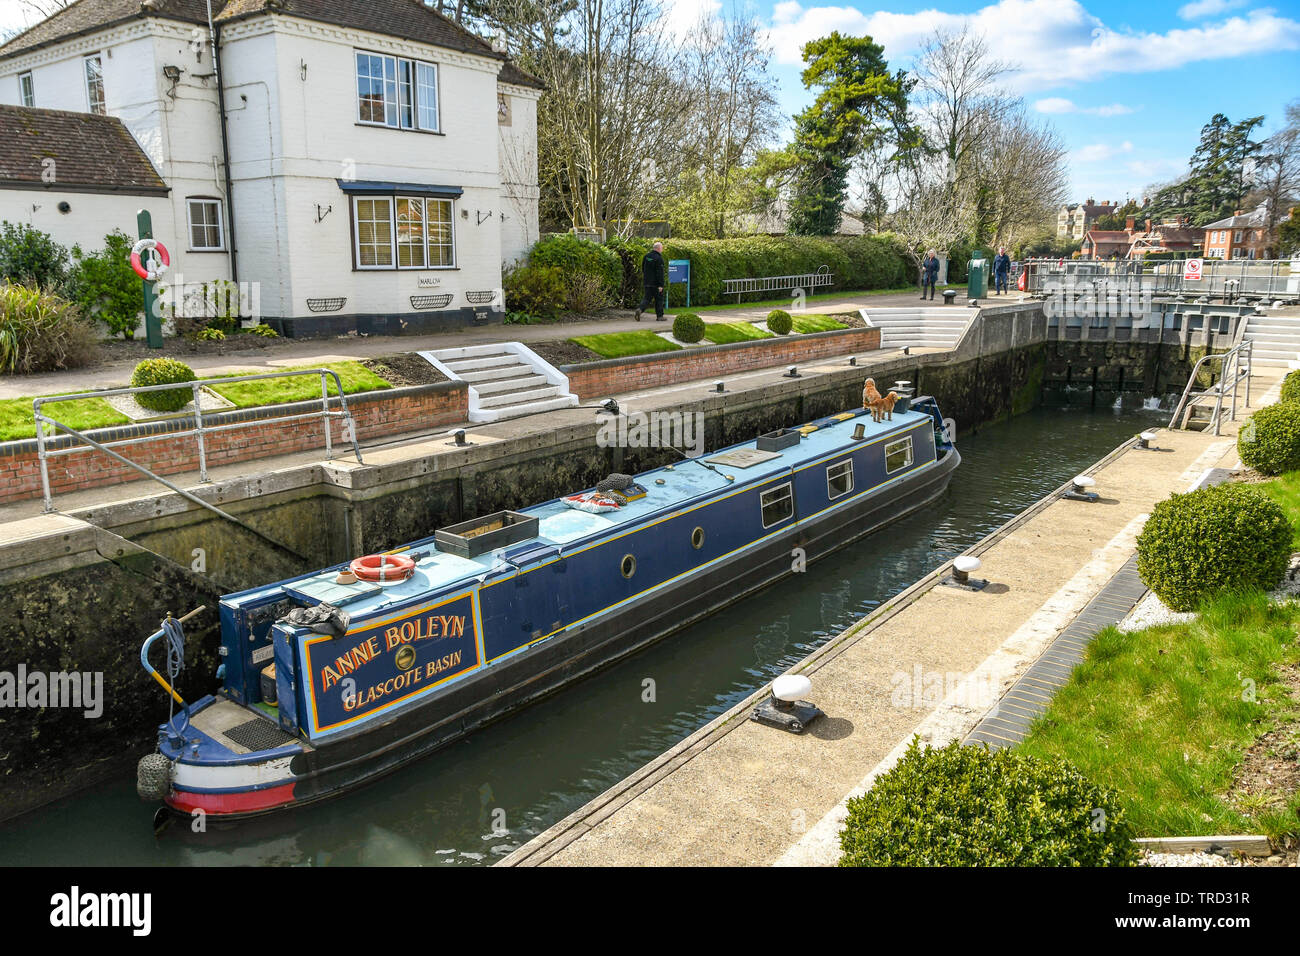 MARLOW, ENGLAND - MARCH 2019: Narrow boat in the lock on the River Thames in Marlow Stock Photo